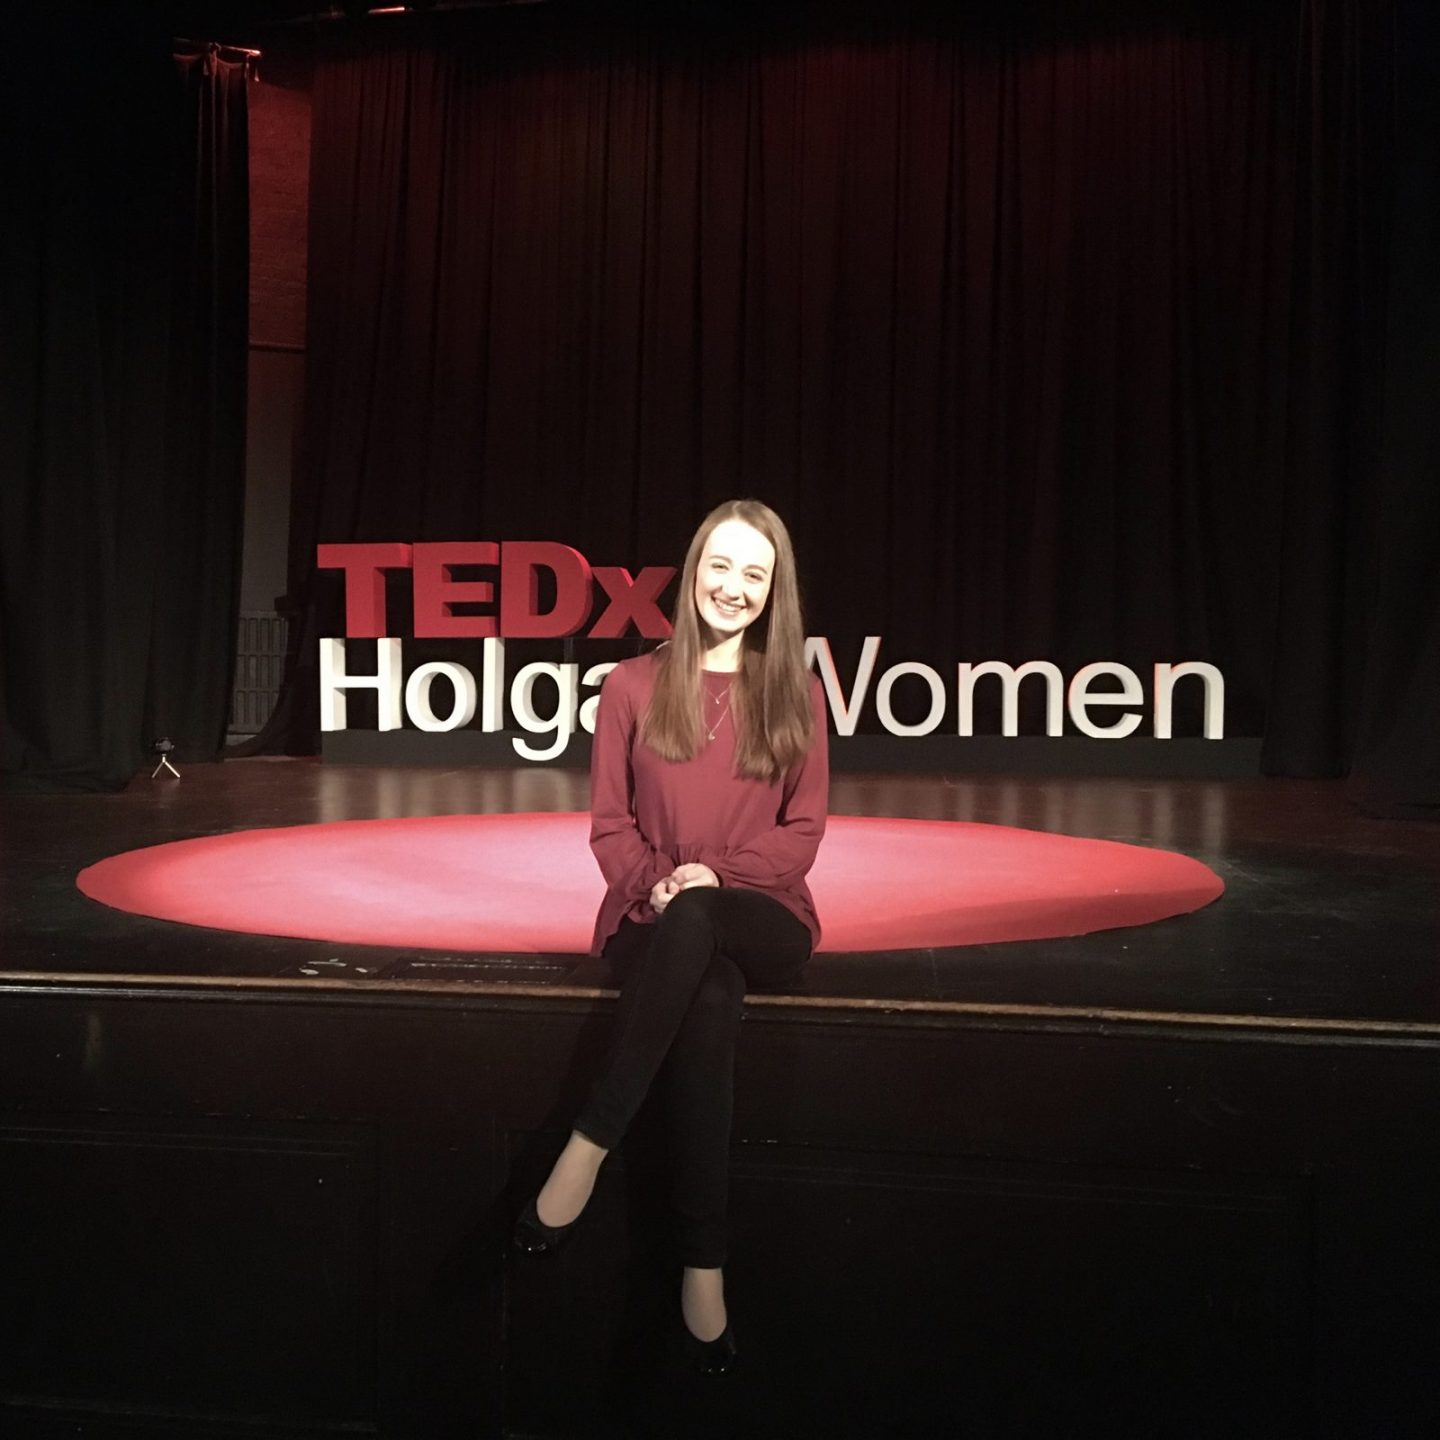 pippa sat on edge of stage at TEDx, iconic red carpet and lettering in background. Pippa is wearing a burgandy long sleeved top, black jeans and black pumps.